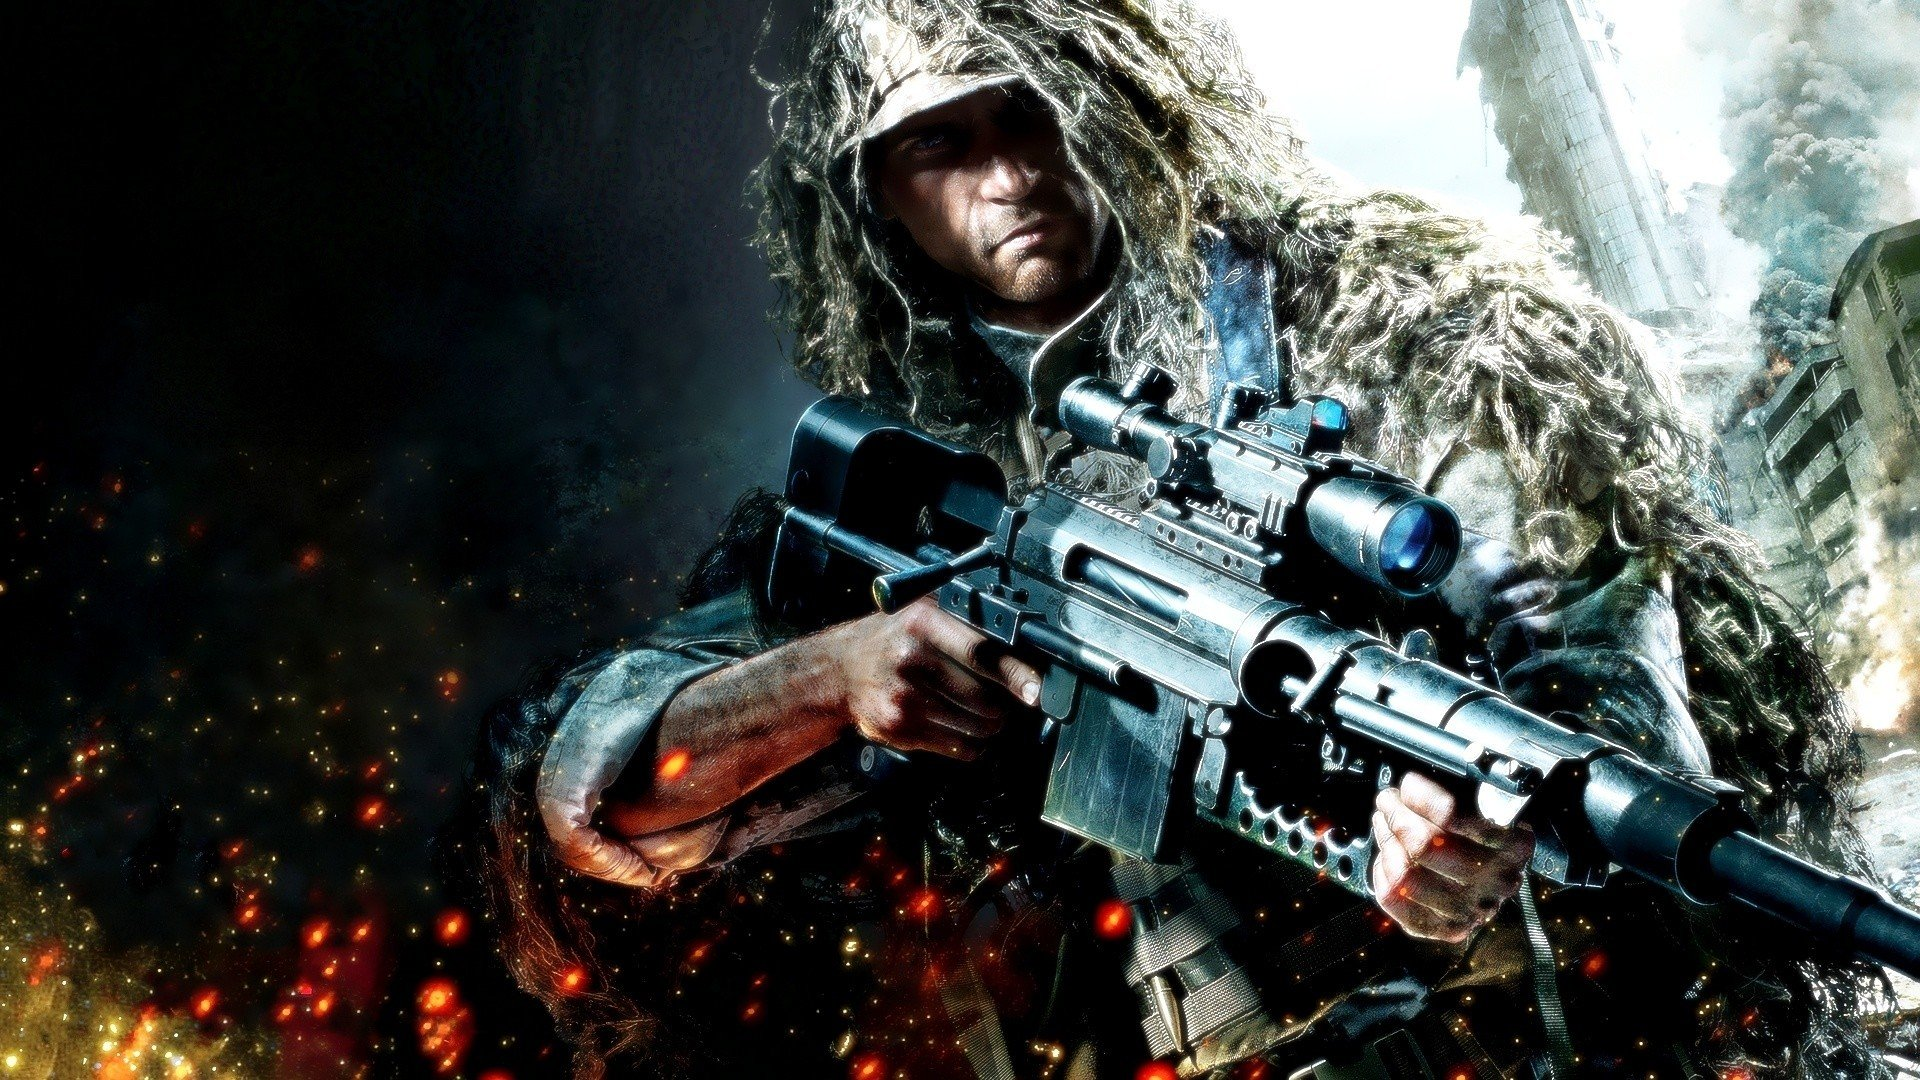 Free Download Army Military Snipers Buildings Sniper Rifles